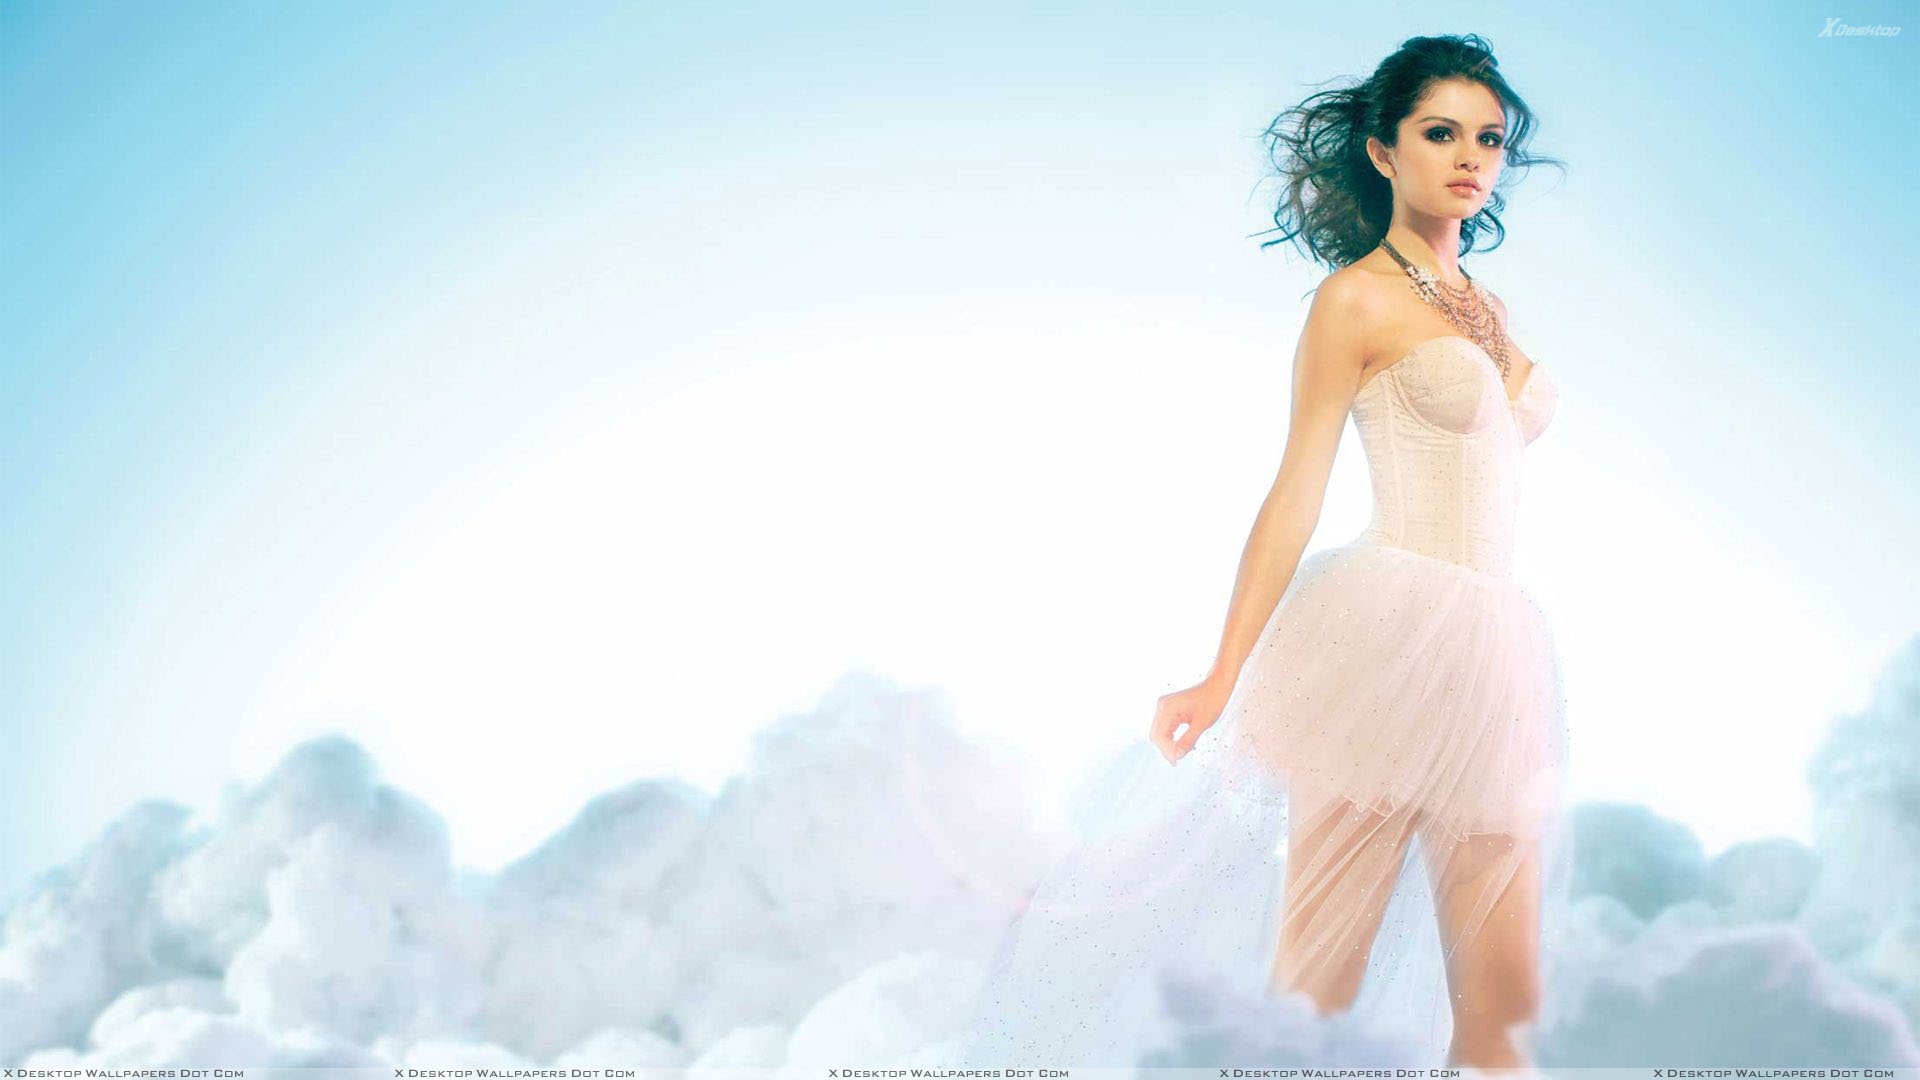 Selena Gomez In White Dress Looking Sweet Photoshoot Wallpaper